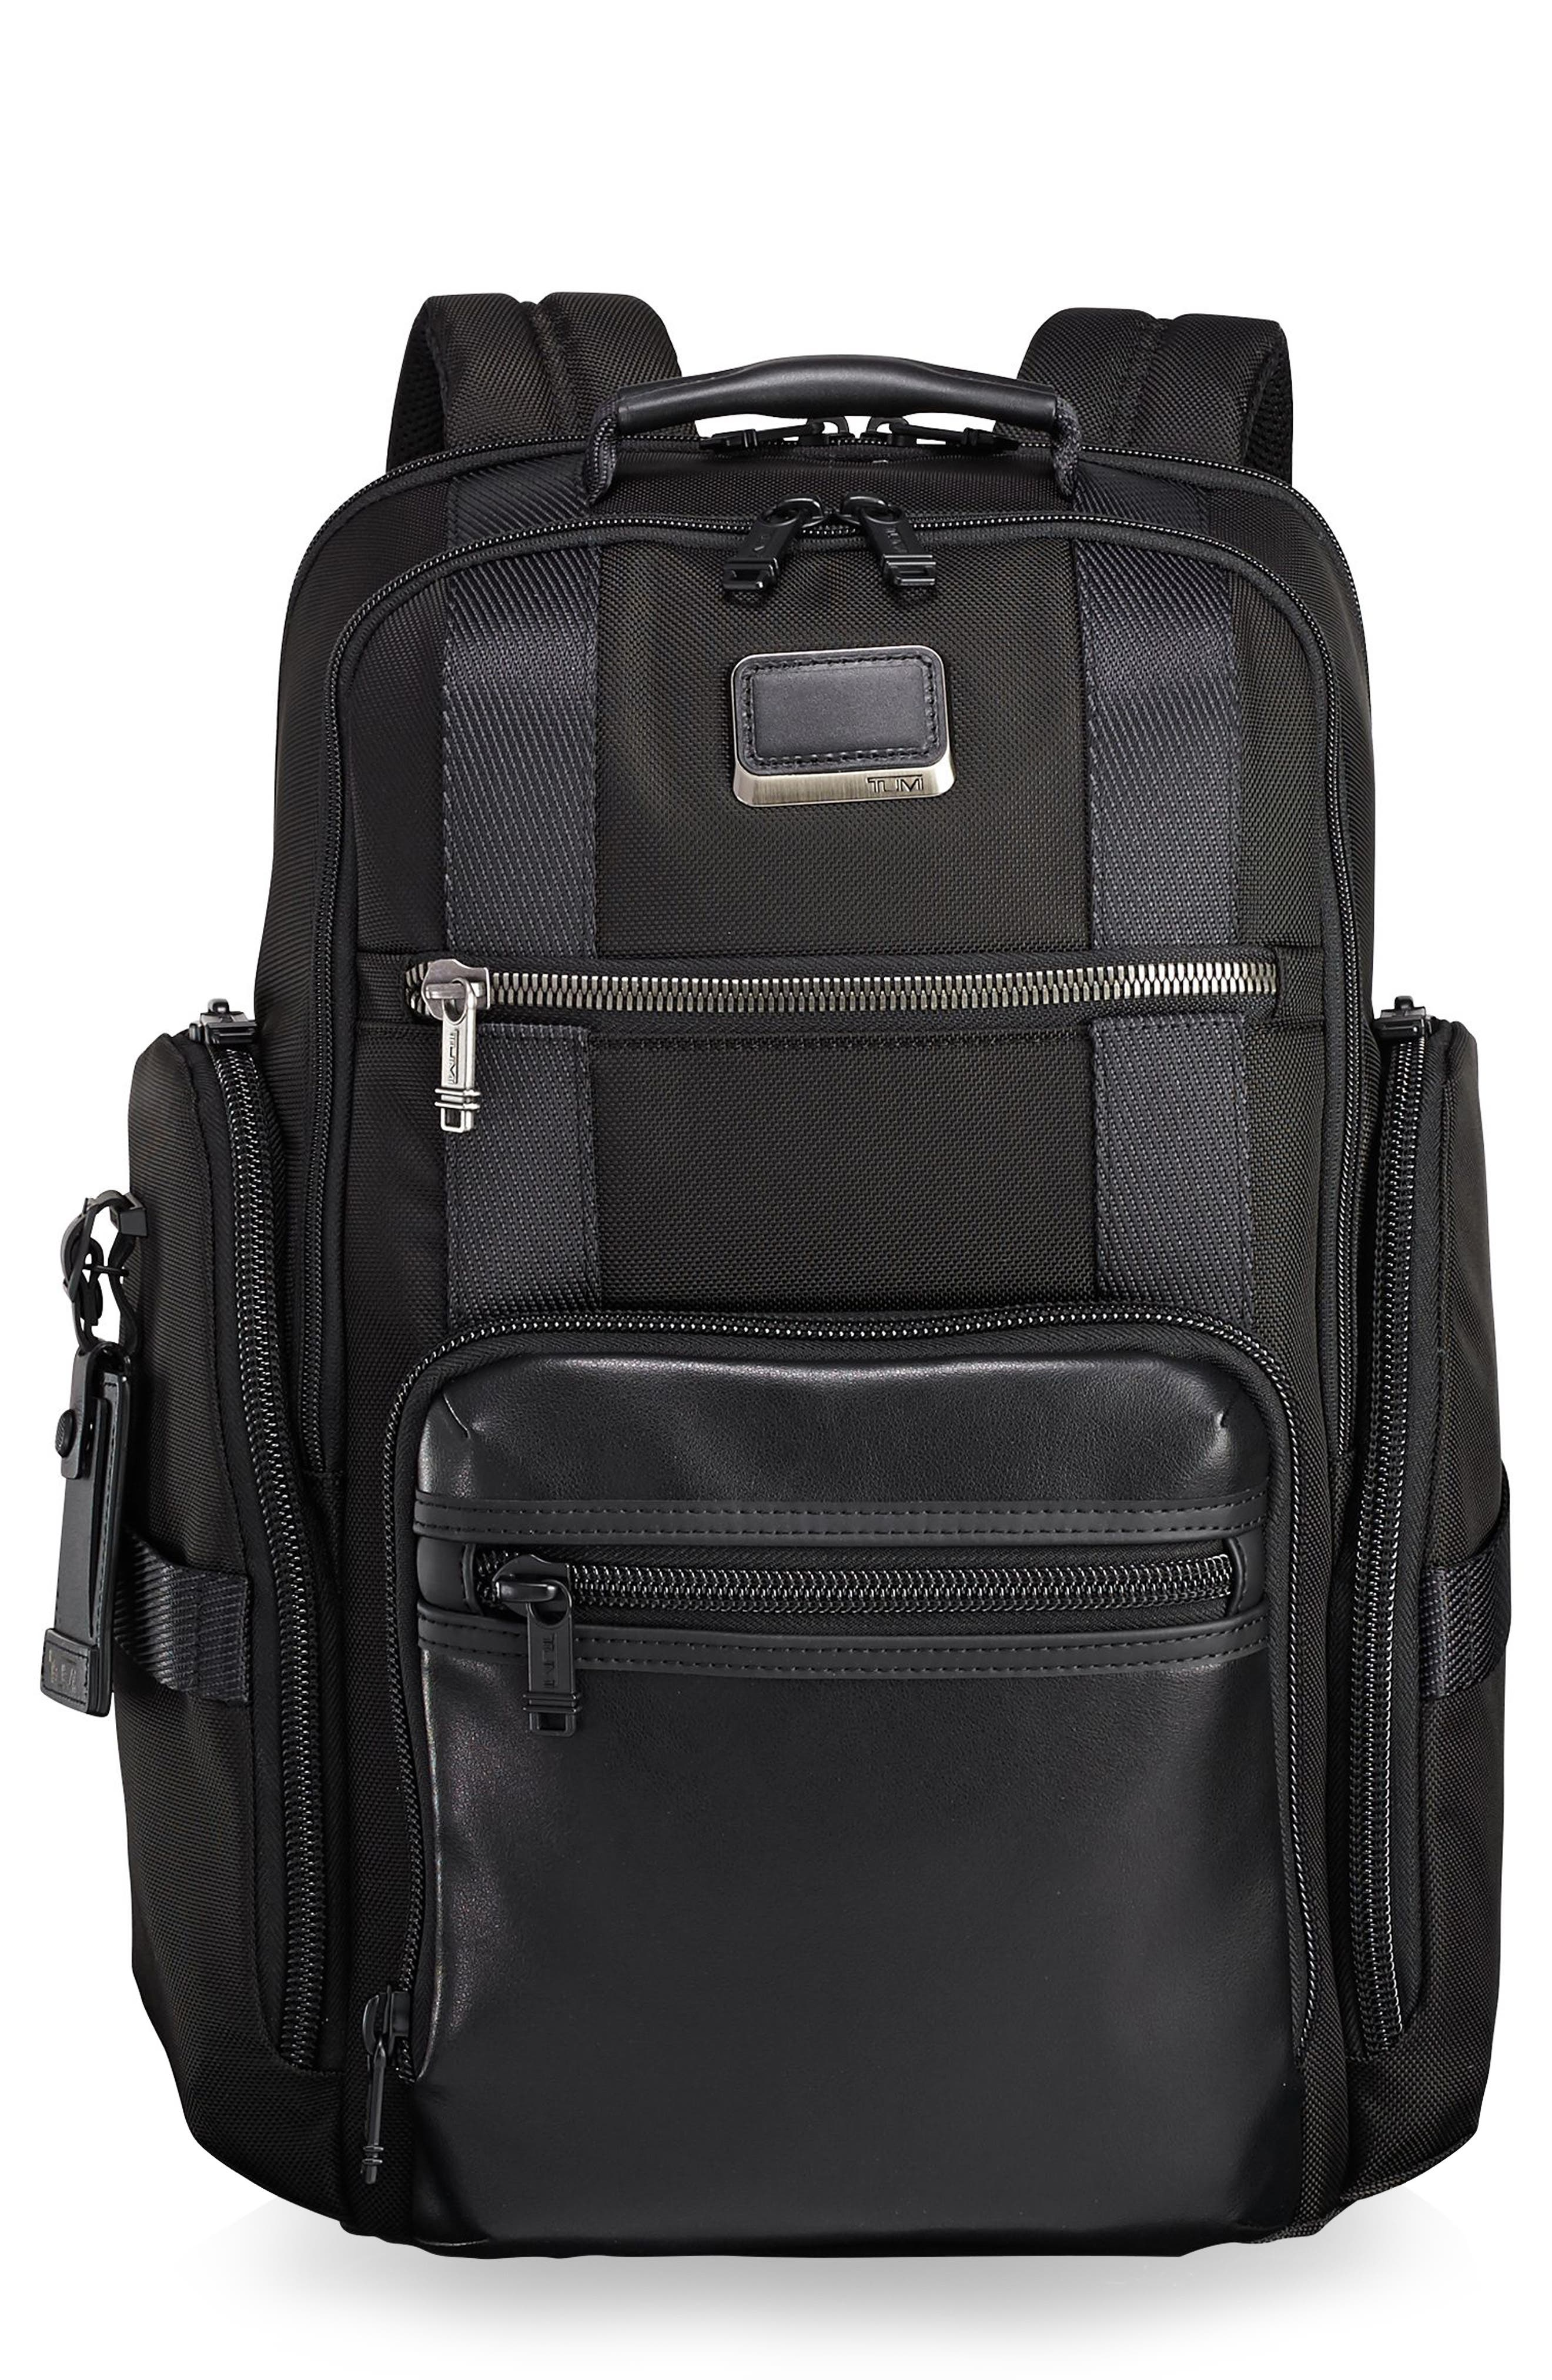 Main Image - Tumi Alpha Bravo - Sheppard Deluxe Backpack